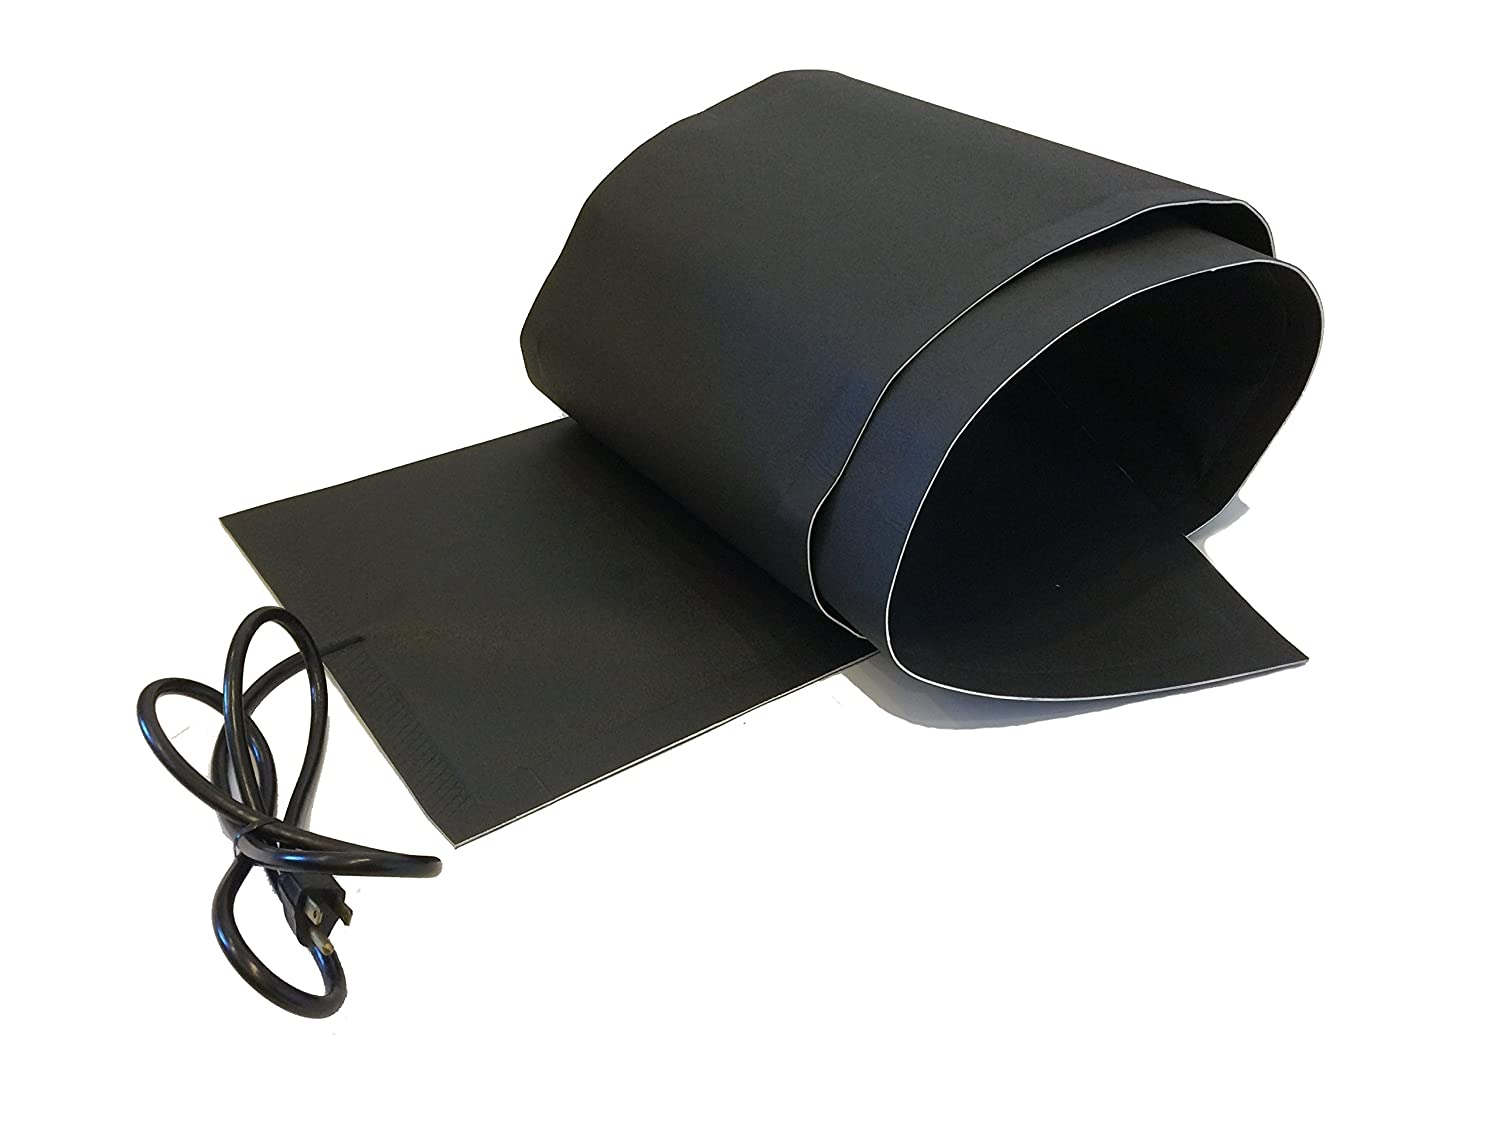 RHS Snow Melting System, roof and valley snow melting mats, Sizes 5' feet x 13' inches, Color black, UL components, 5 ft. mat melts 2' inches of snow per hour, buy factory direct, (5' ft. x 13' in.)